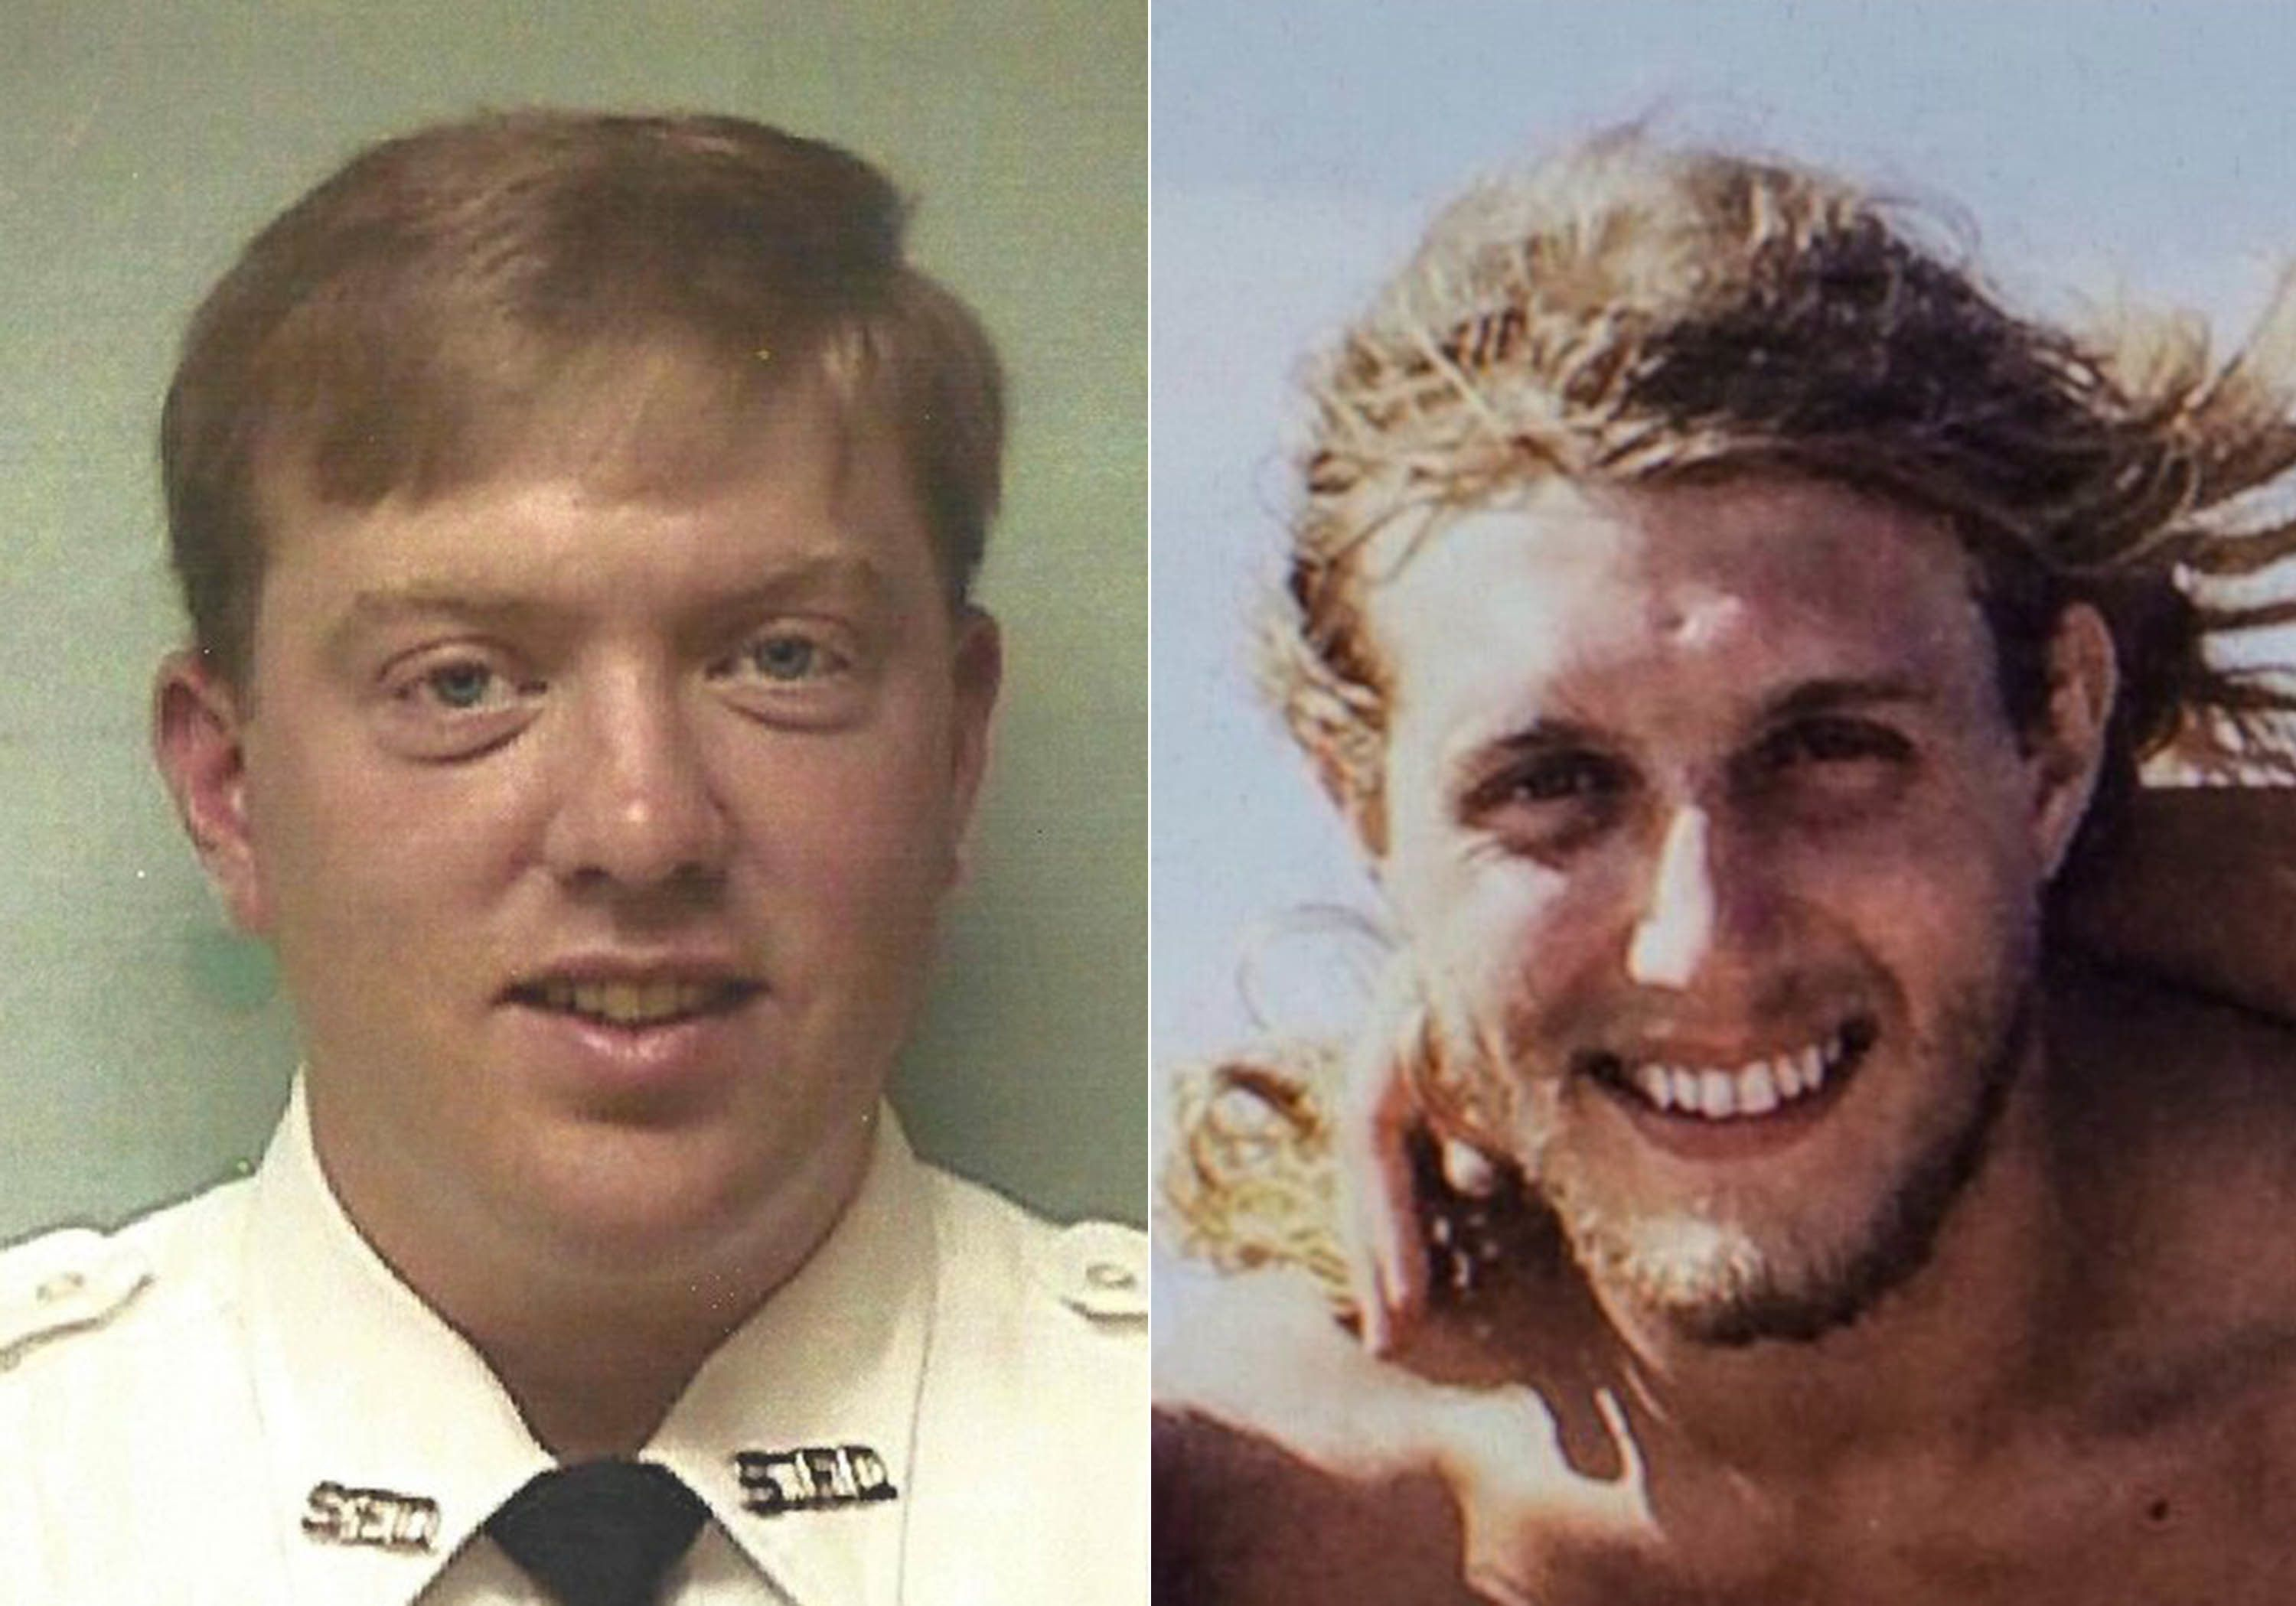 Hardison (left) in uniform before his injury (left) and a snapshot of David Rodebaugh, the face donor.